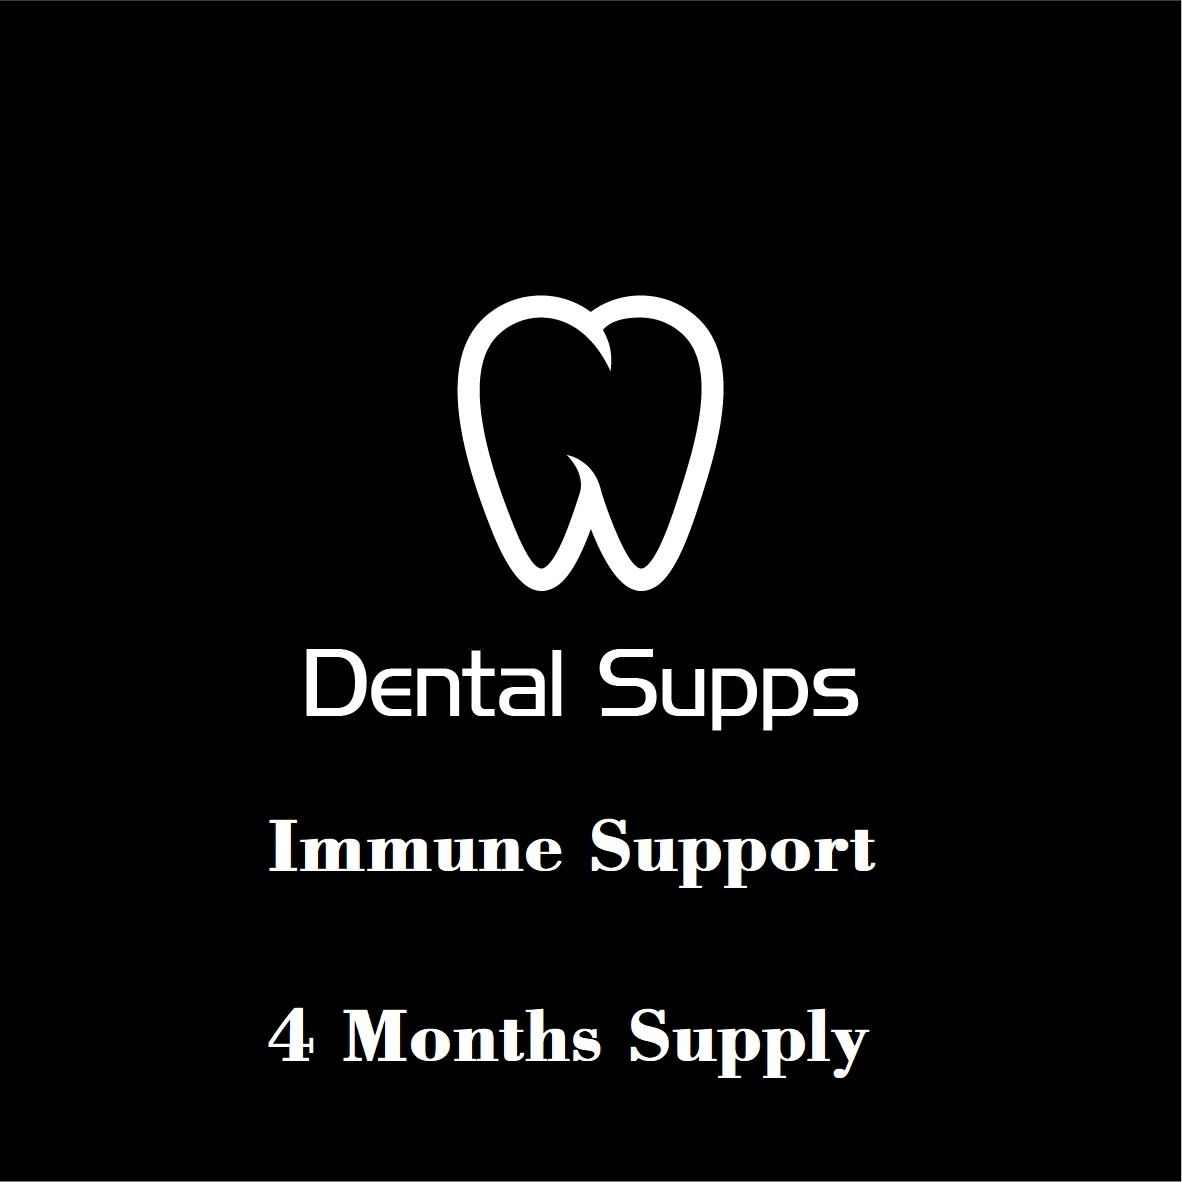 Dental Supps Immune Support Kit: 4 Months Supply - 8-pack NK Cell Activator, 30 Vegetarian Capsules + 4-pack Reishi Extract Mushroom Complex, 60 Vegetarian Capsules